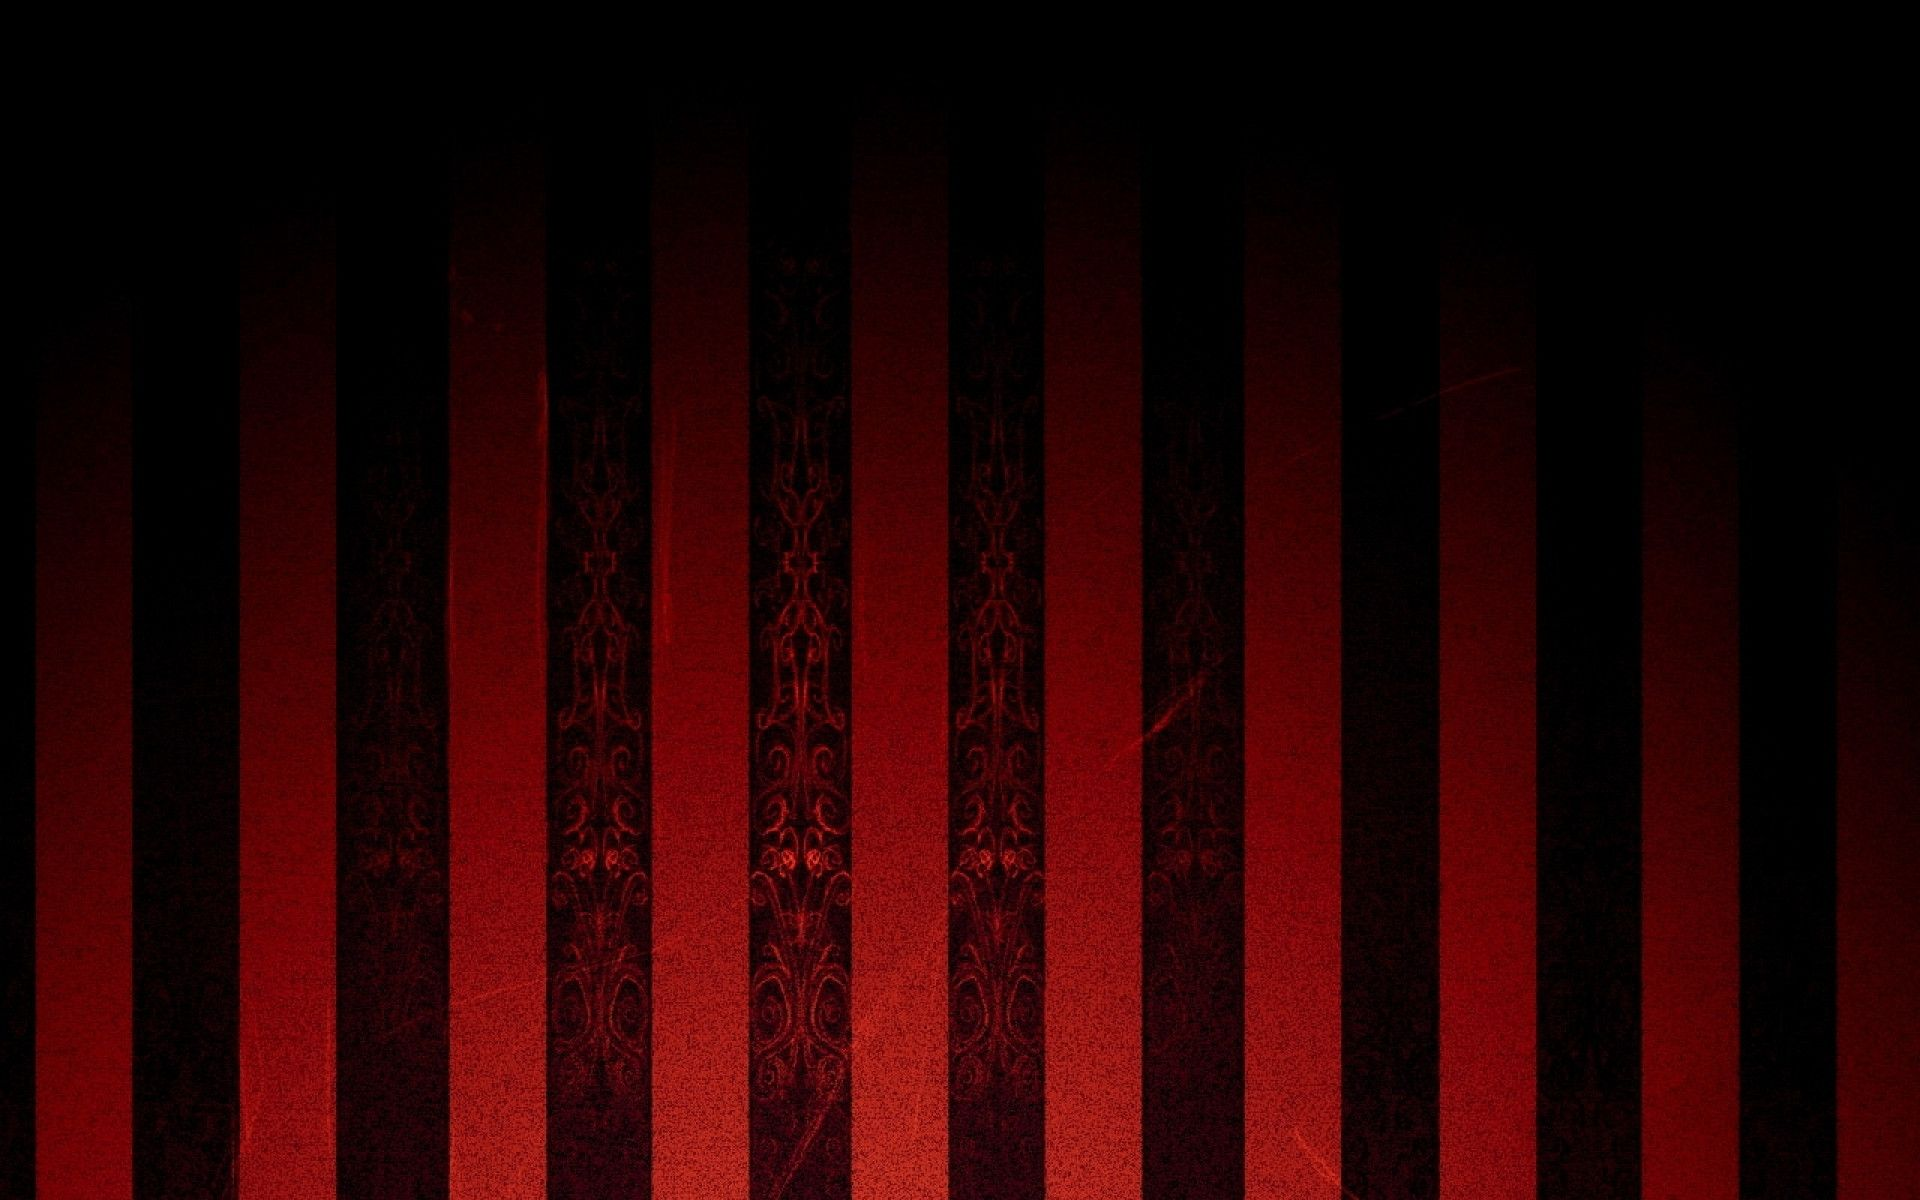 Red And White Striped Wallpaper Awesome 13 Awesome Black And Red Wallpapers Hd The Nology Of